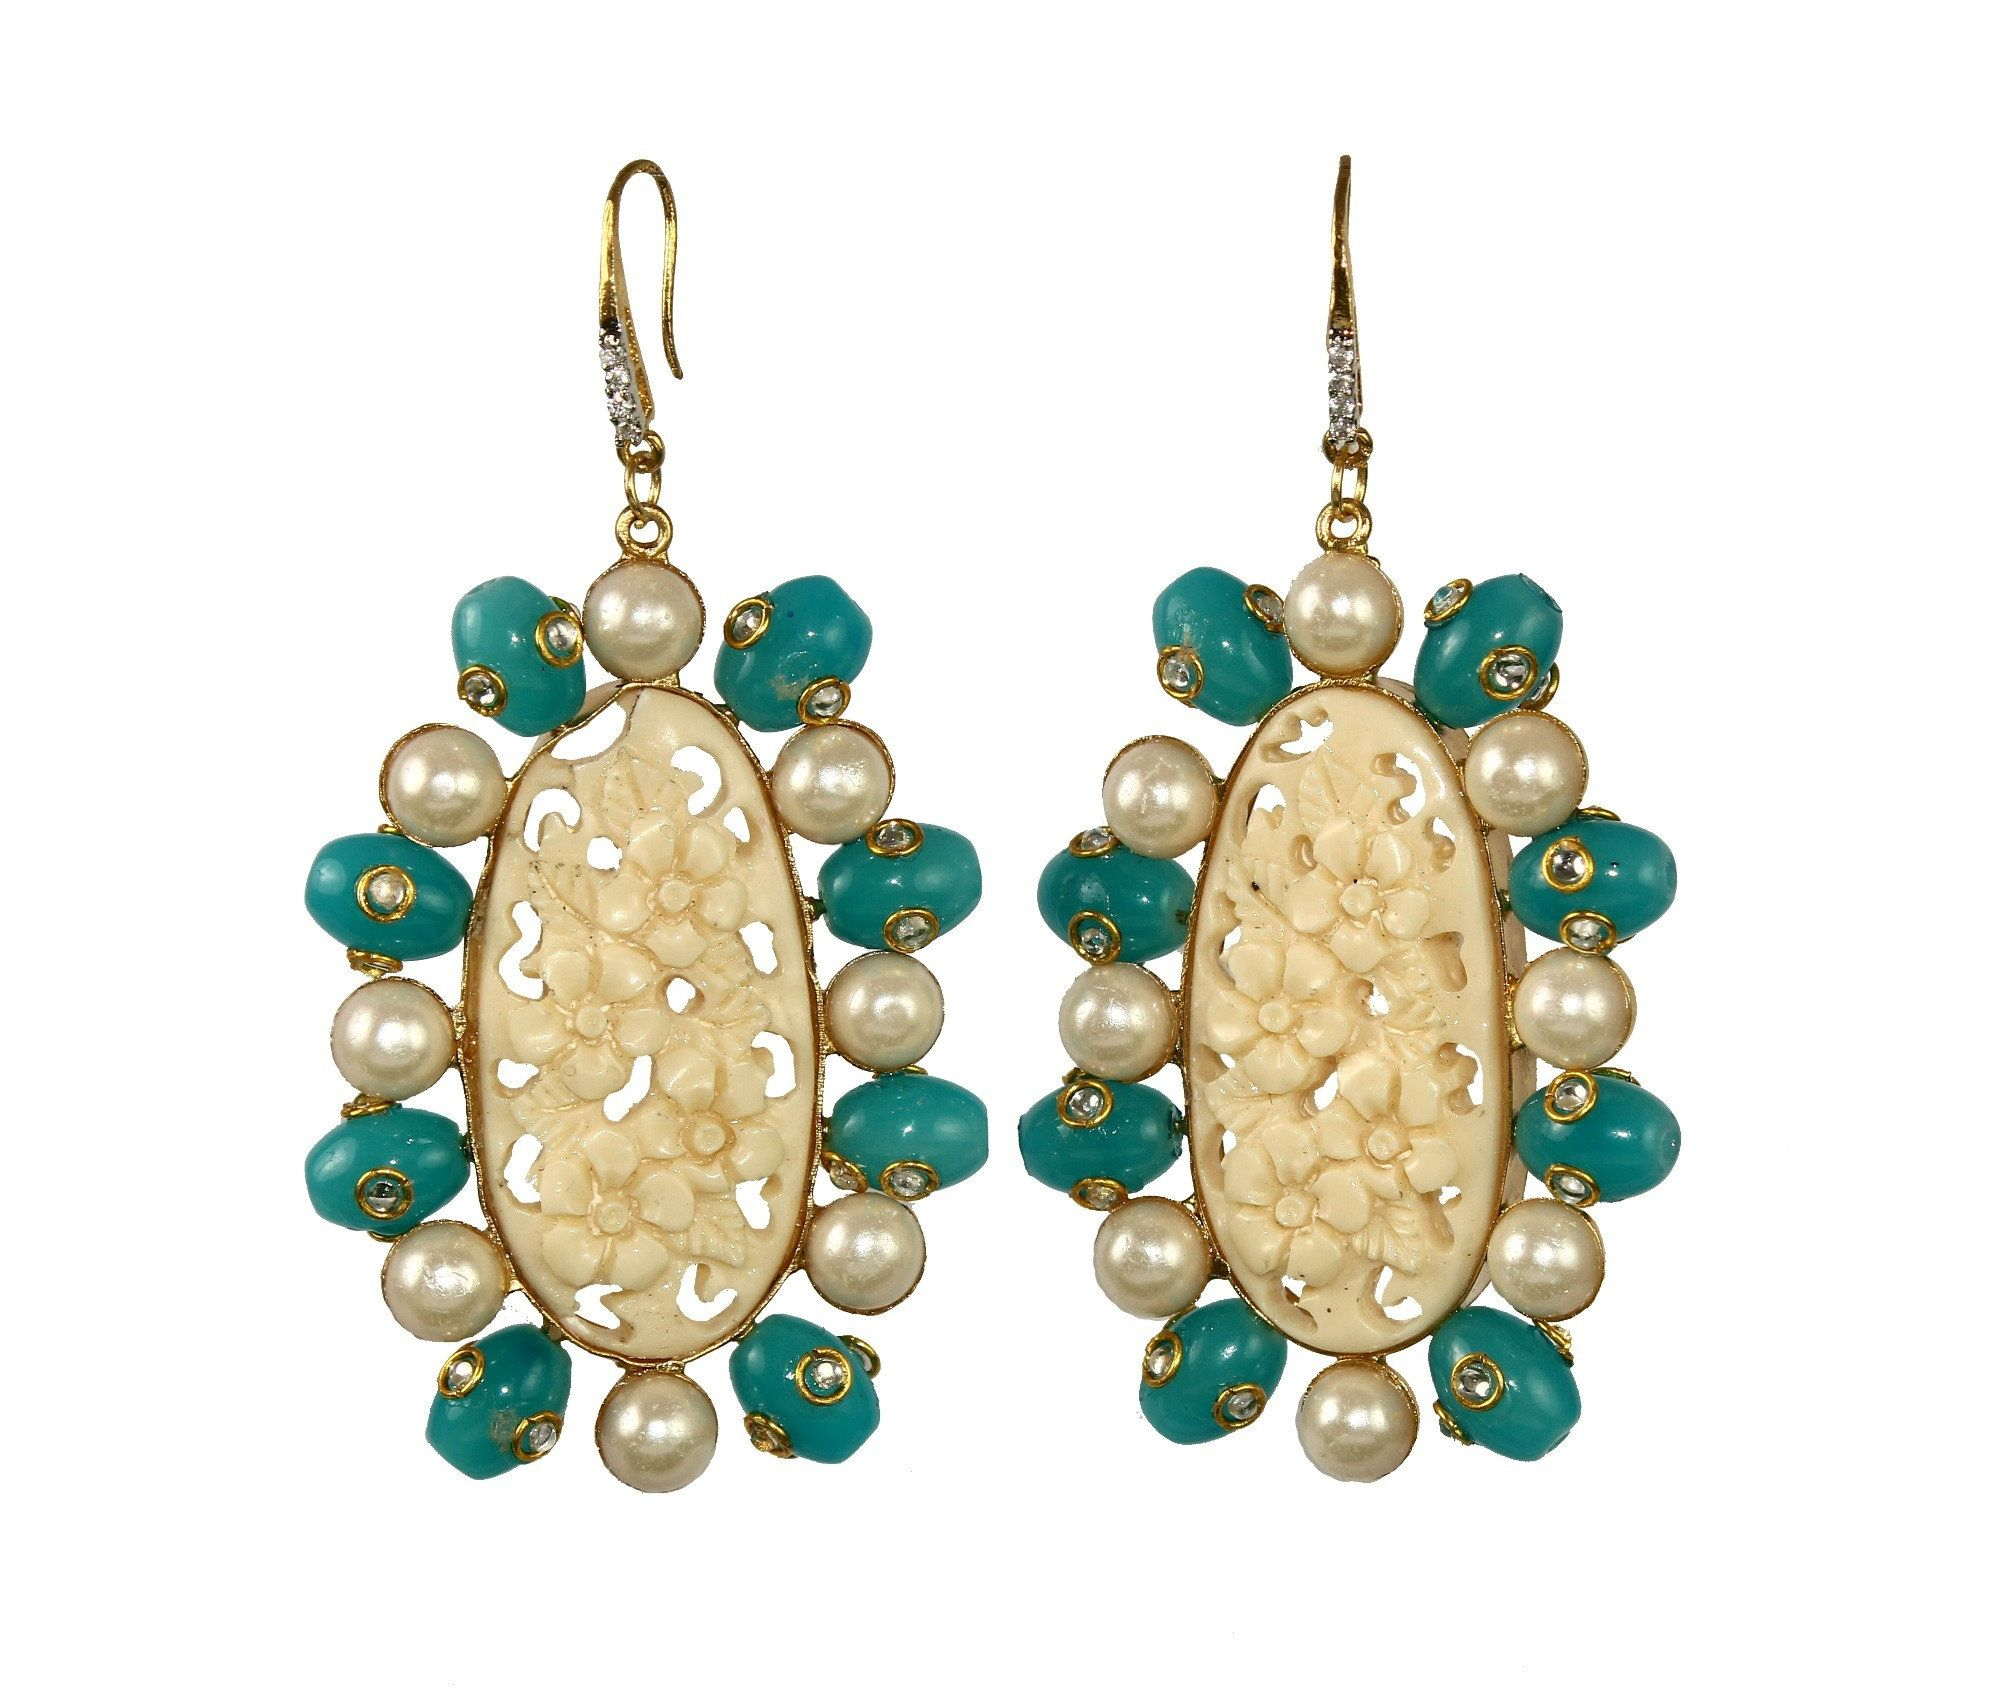 Jewelry making Boho jewelry Earring Finging Gold plated Agate connector Gift Jewelry Making supplies Bohemein Gemtone DIY Earrings